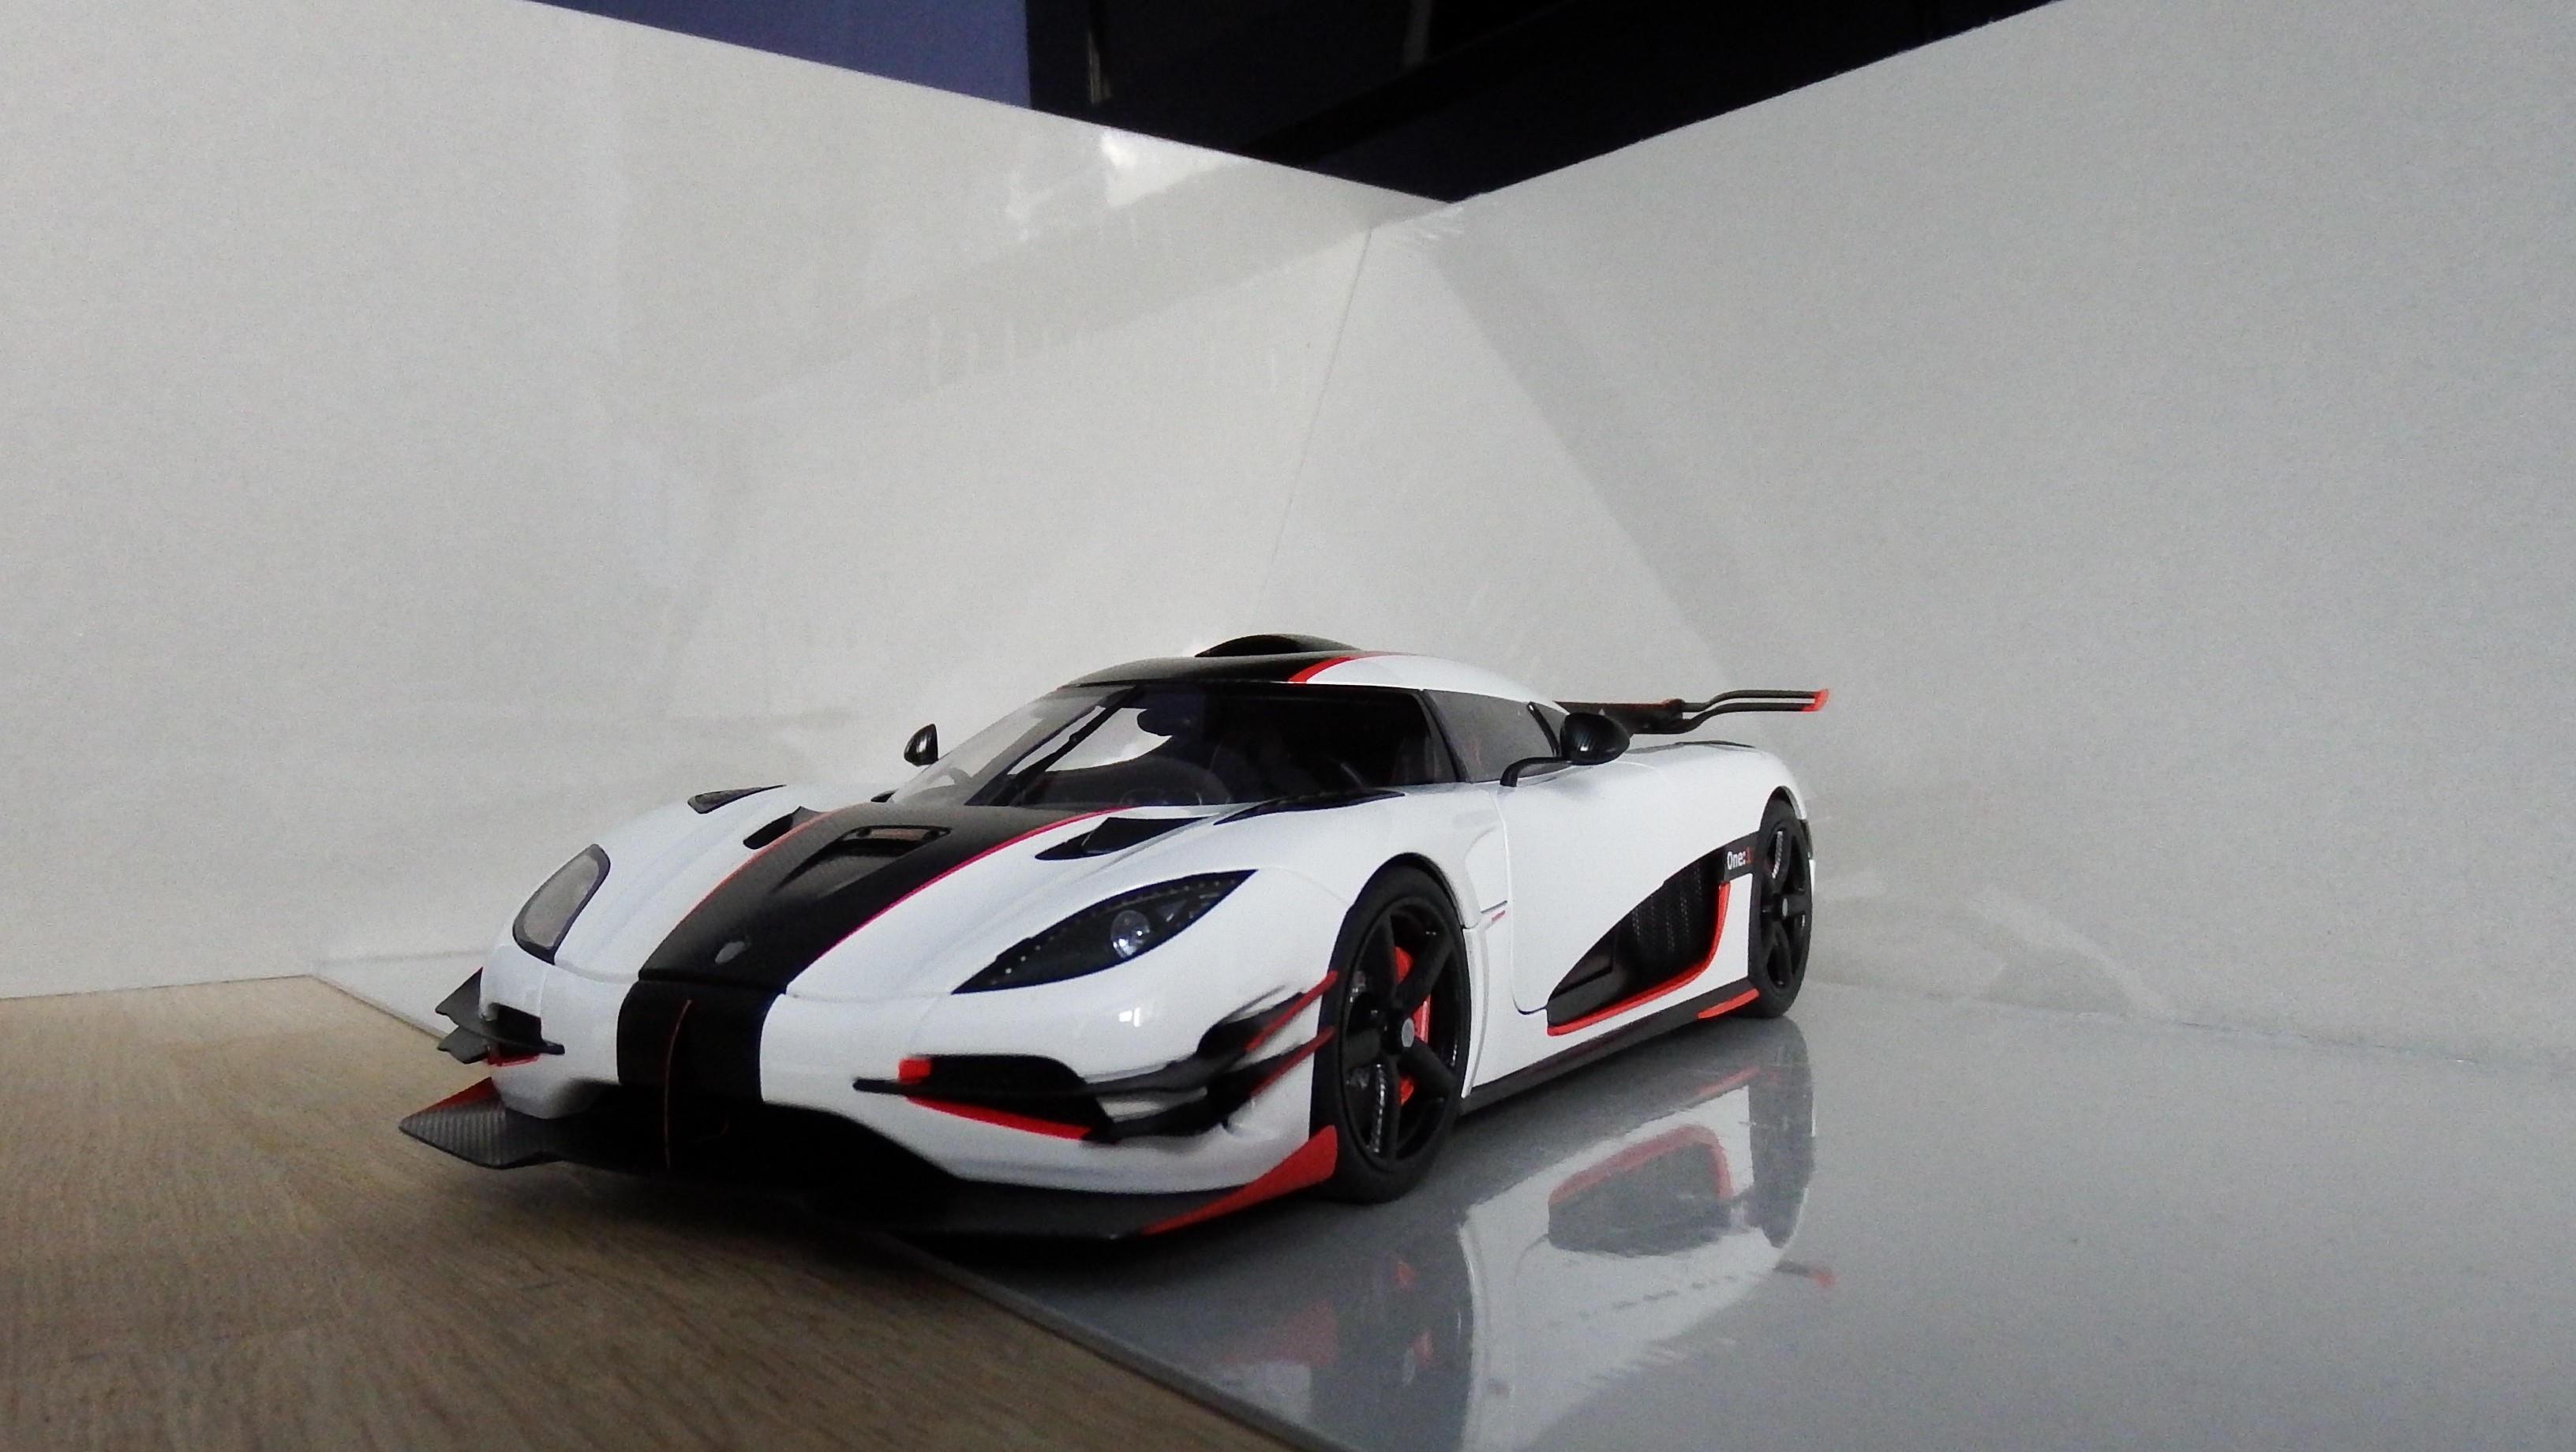 Top Gear Koenigsegg One Lovely Laferrari´s 1 18 Collection Dx 1 18 Collectors